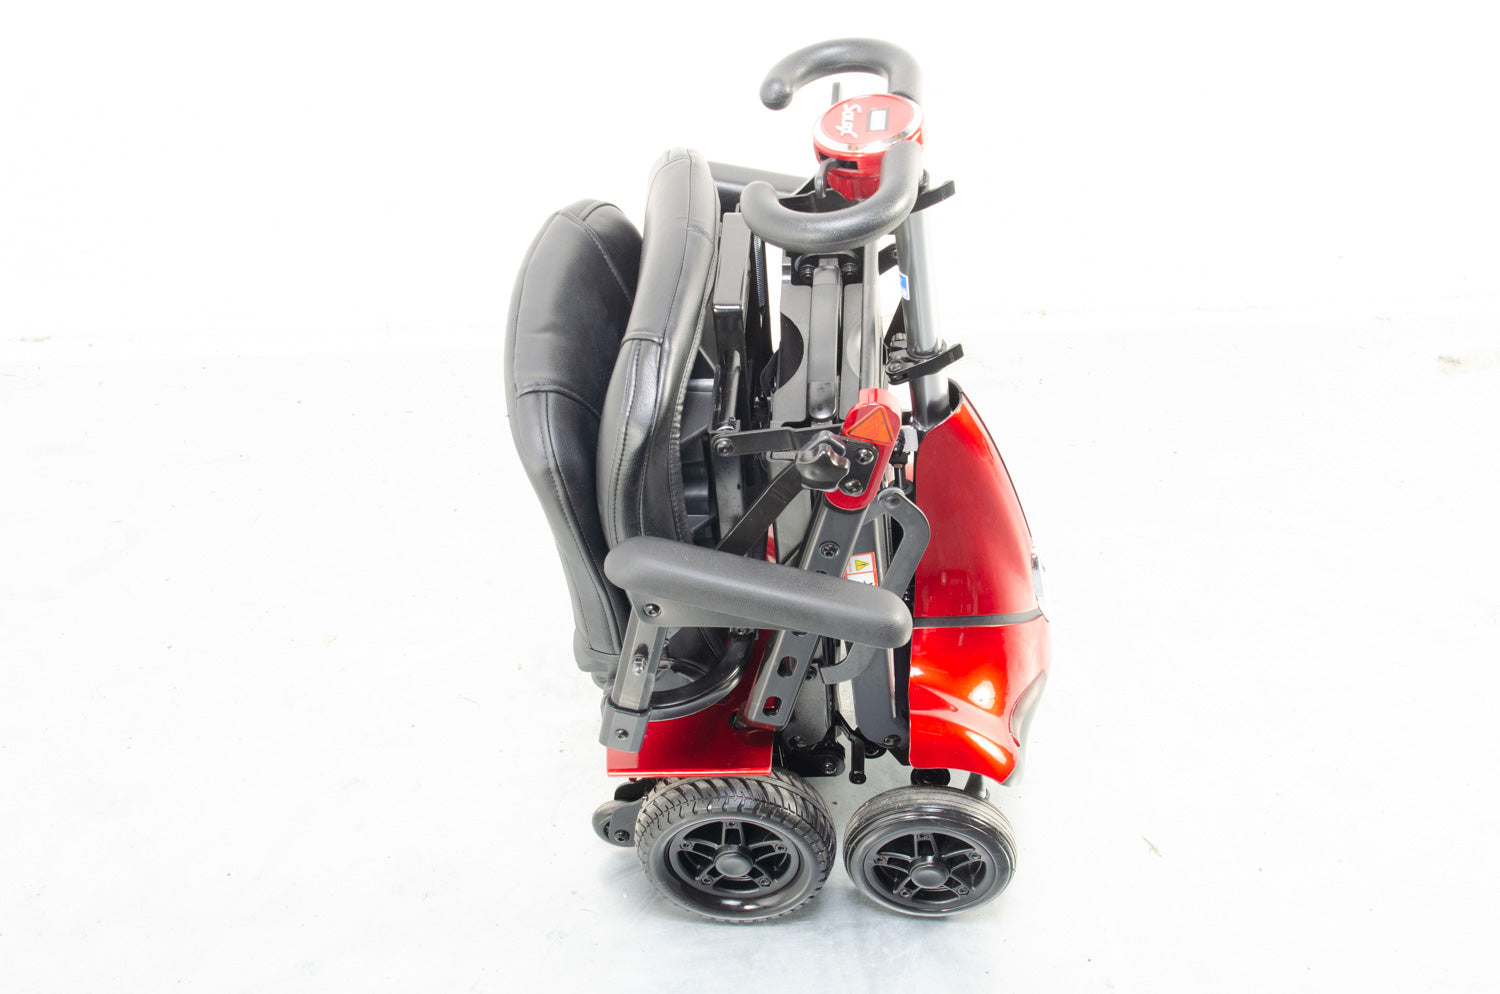 Monarch Mobie 4mph Folding Mobility Scooter Lithium Battery in Red